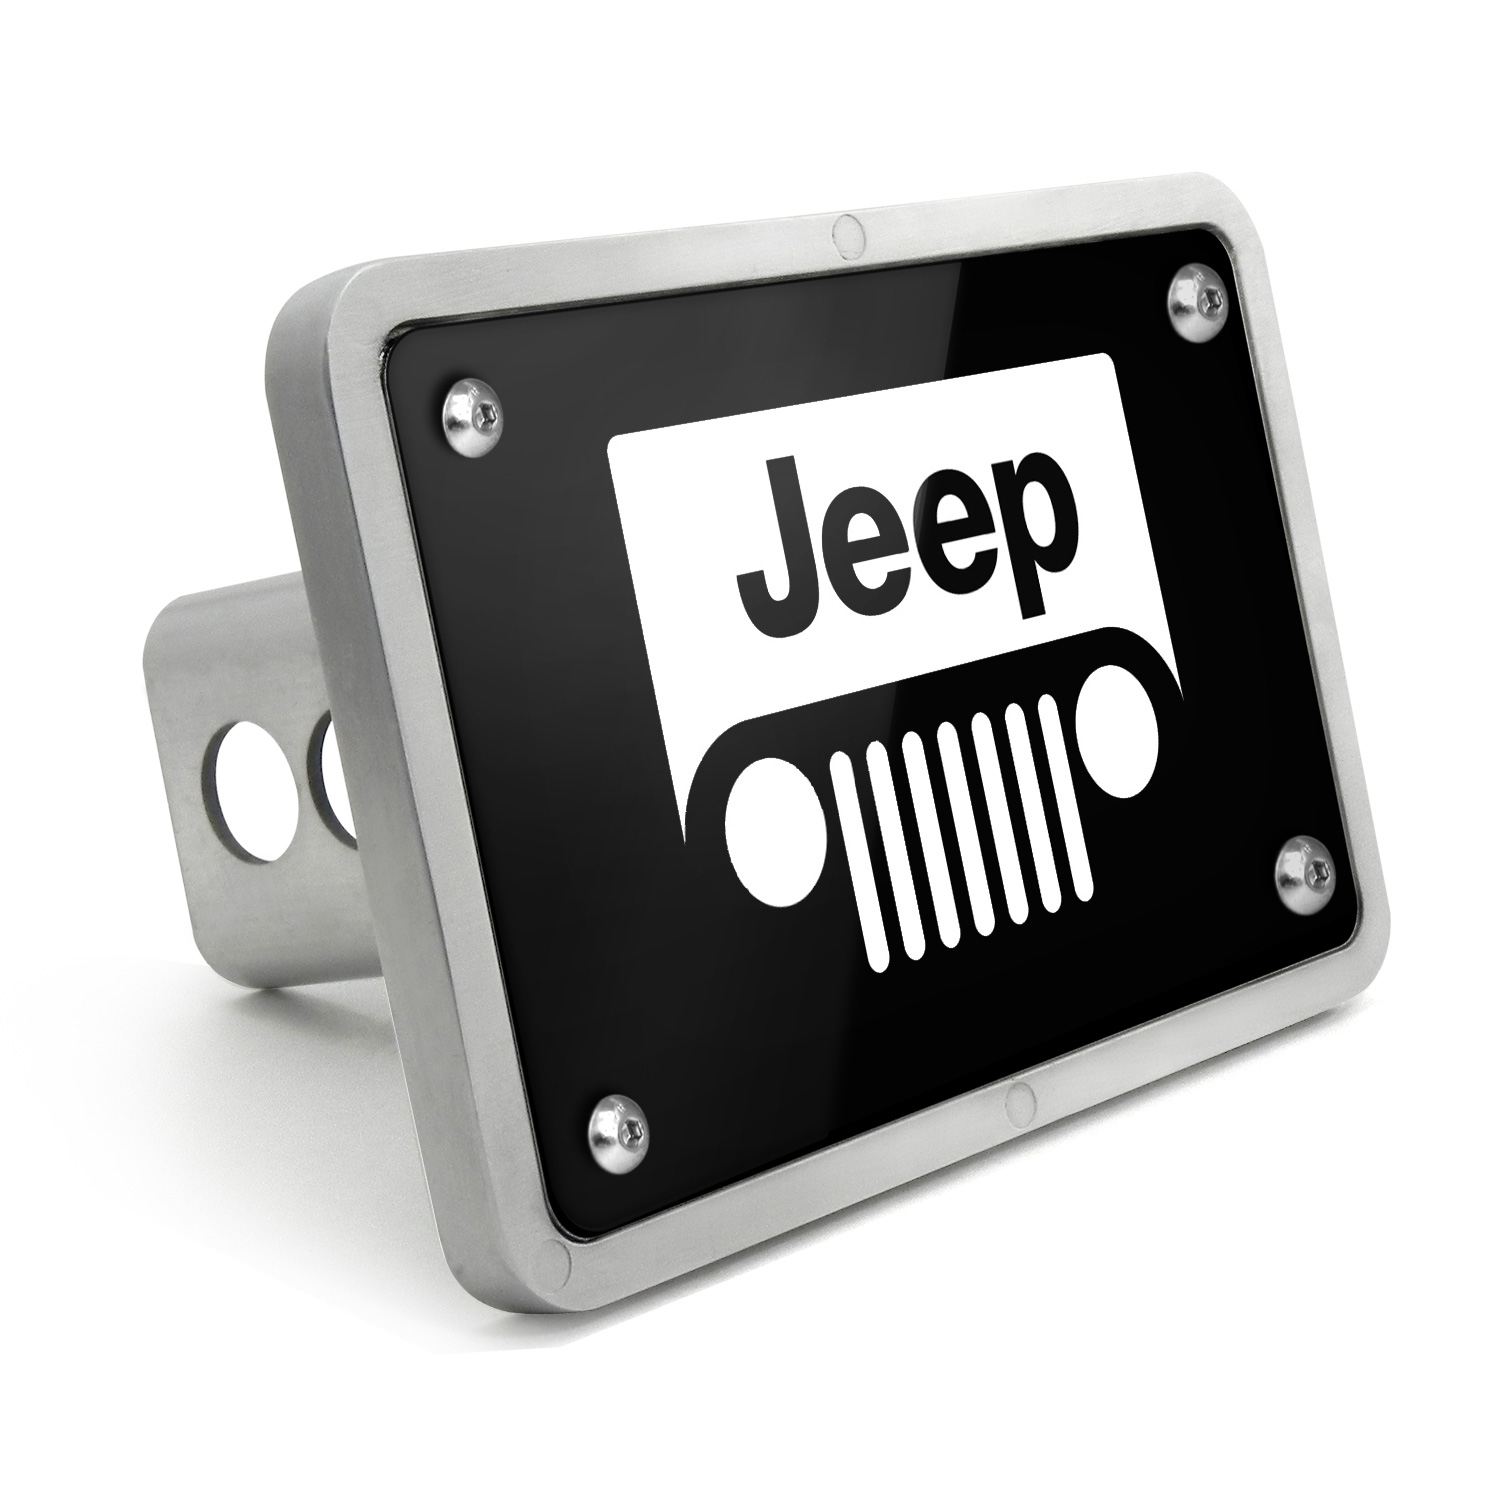 Jeep Grill UV Graphic Black Billet Aluminum 2 inch Tow Hitch Cover